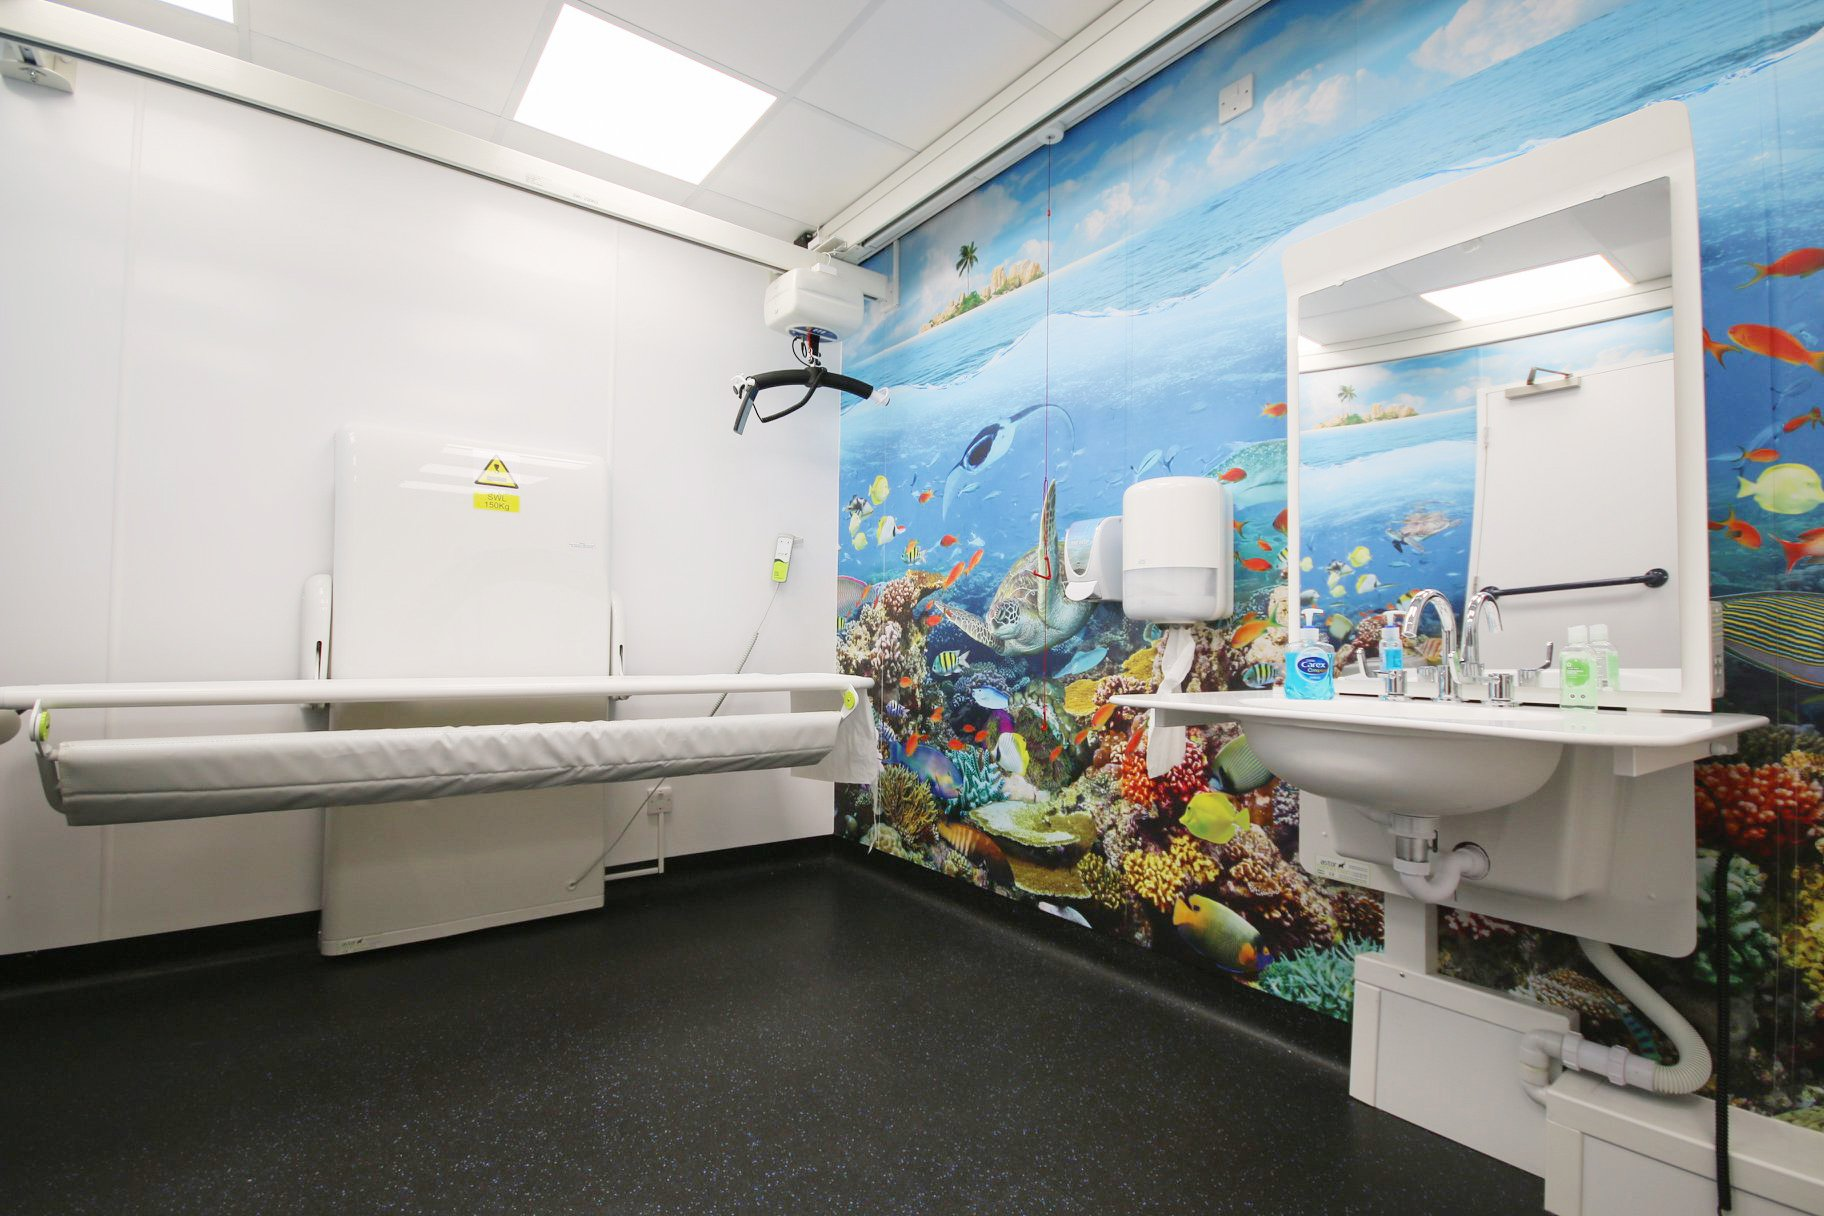 A Changing Places toilet at The Deep Aquarium, Hull